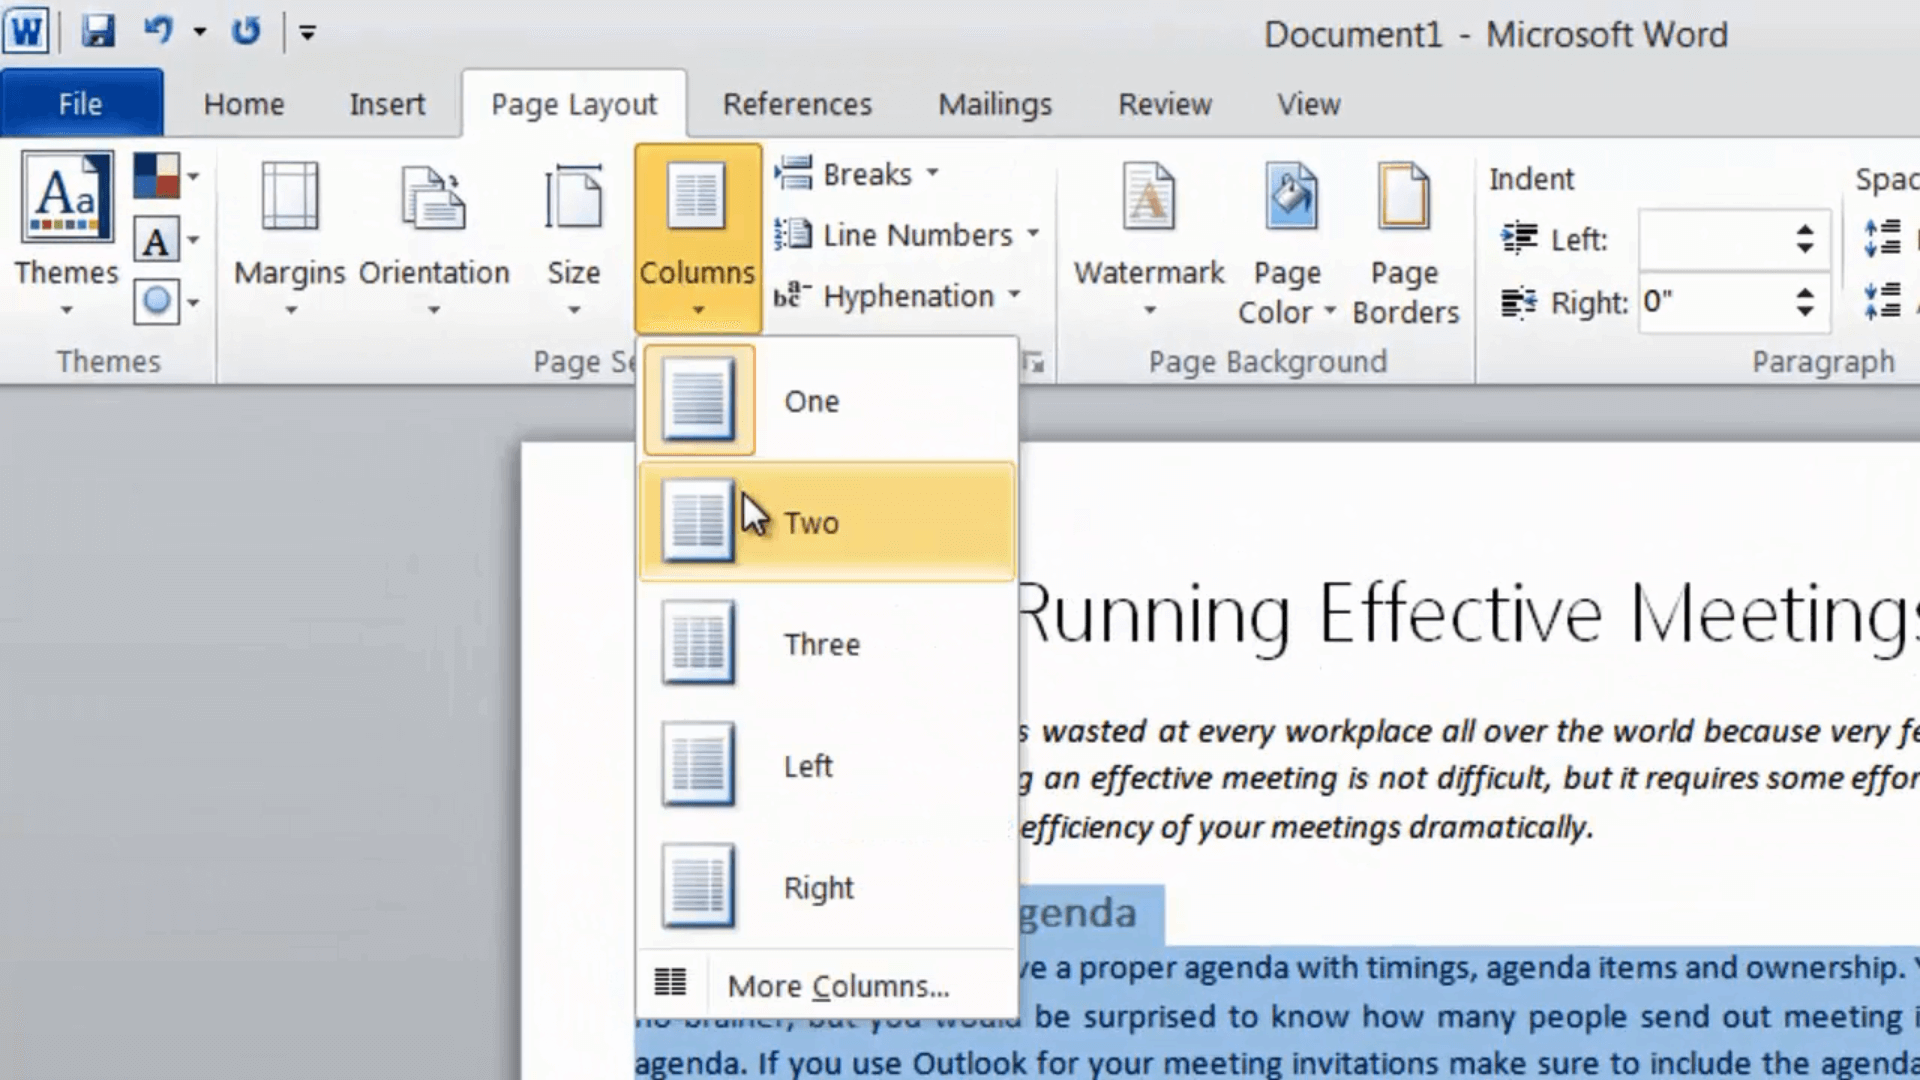 how to mark a document as final in word 2010